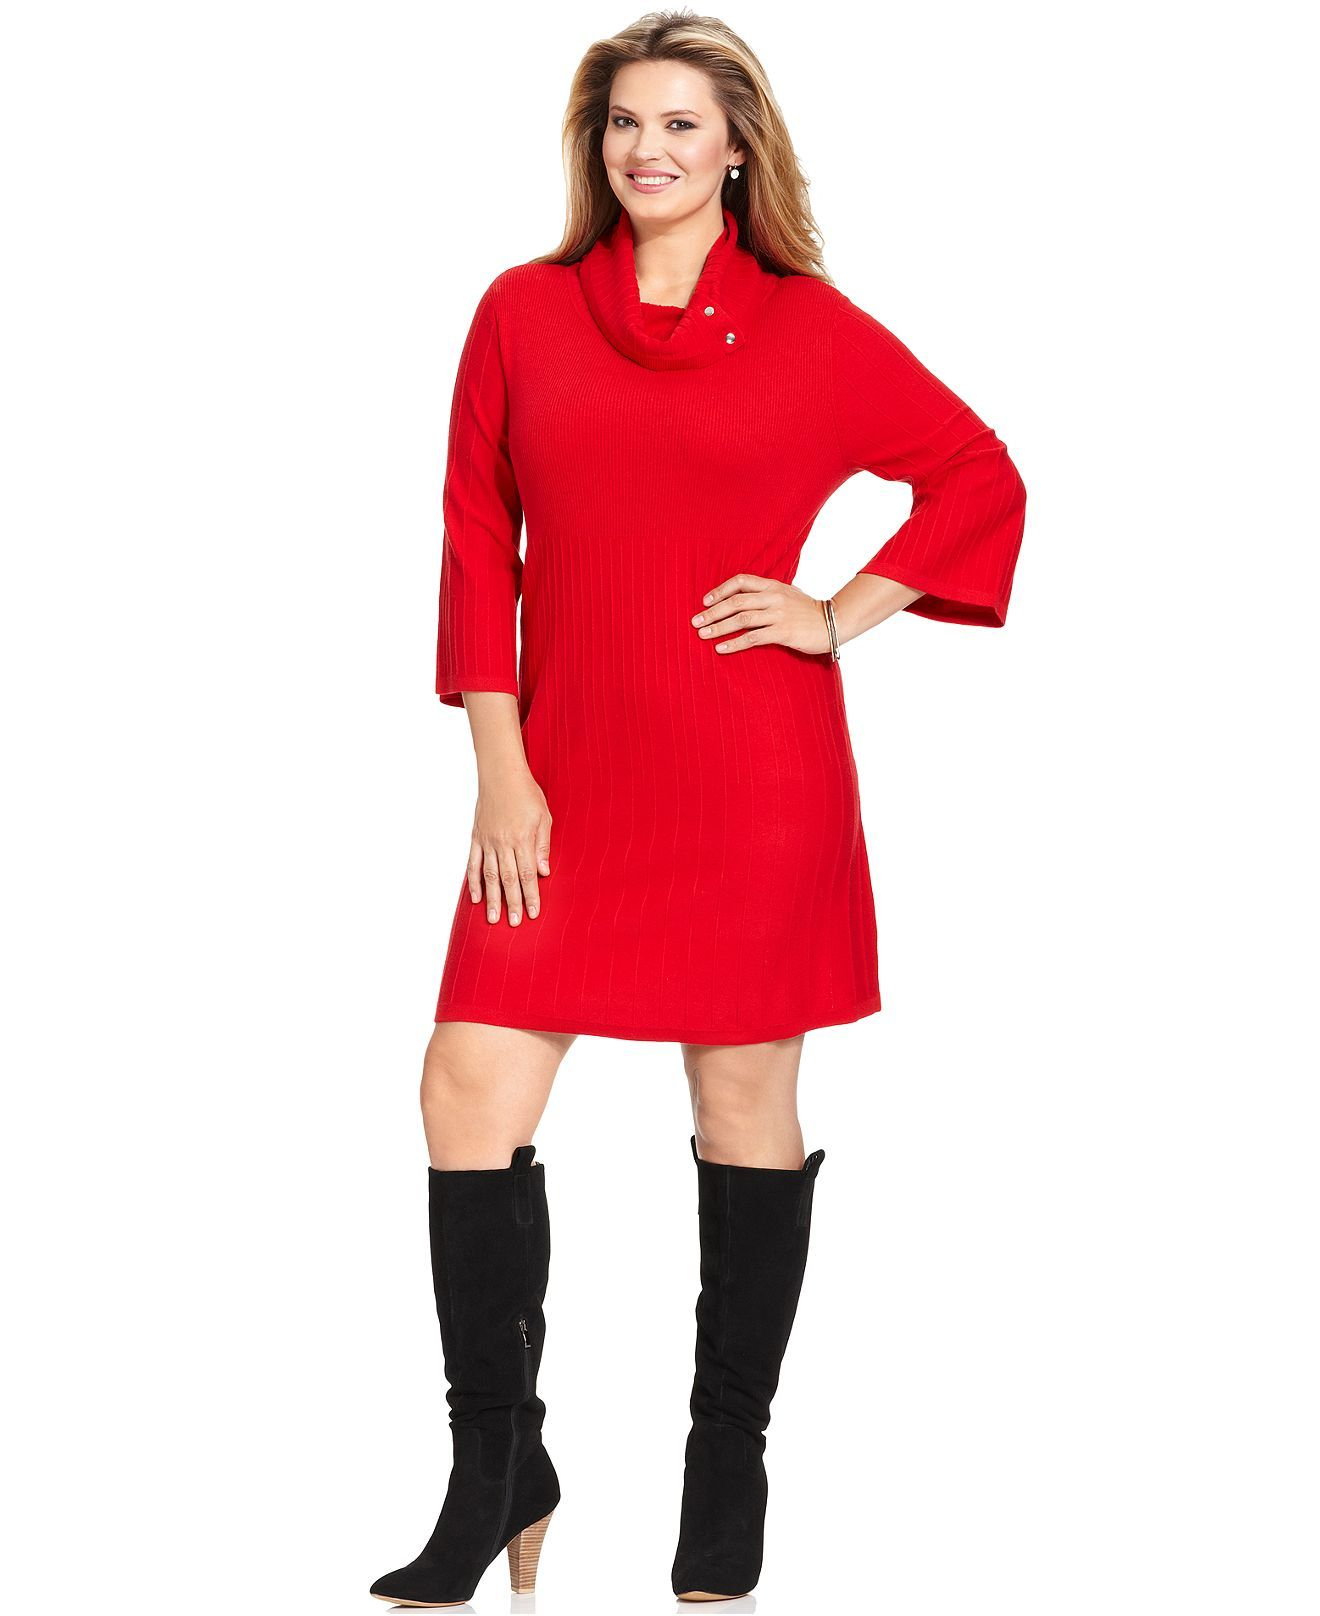 Styleco Plus Size Three Quarter Sleeve A Line Sweater Dress Plus